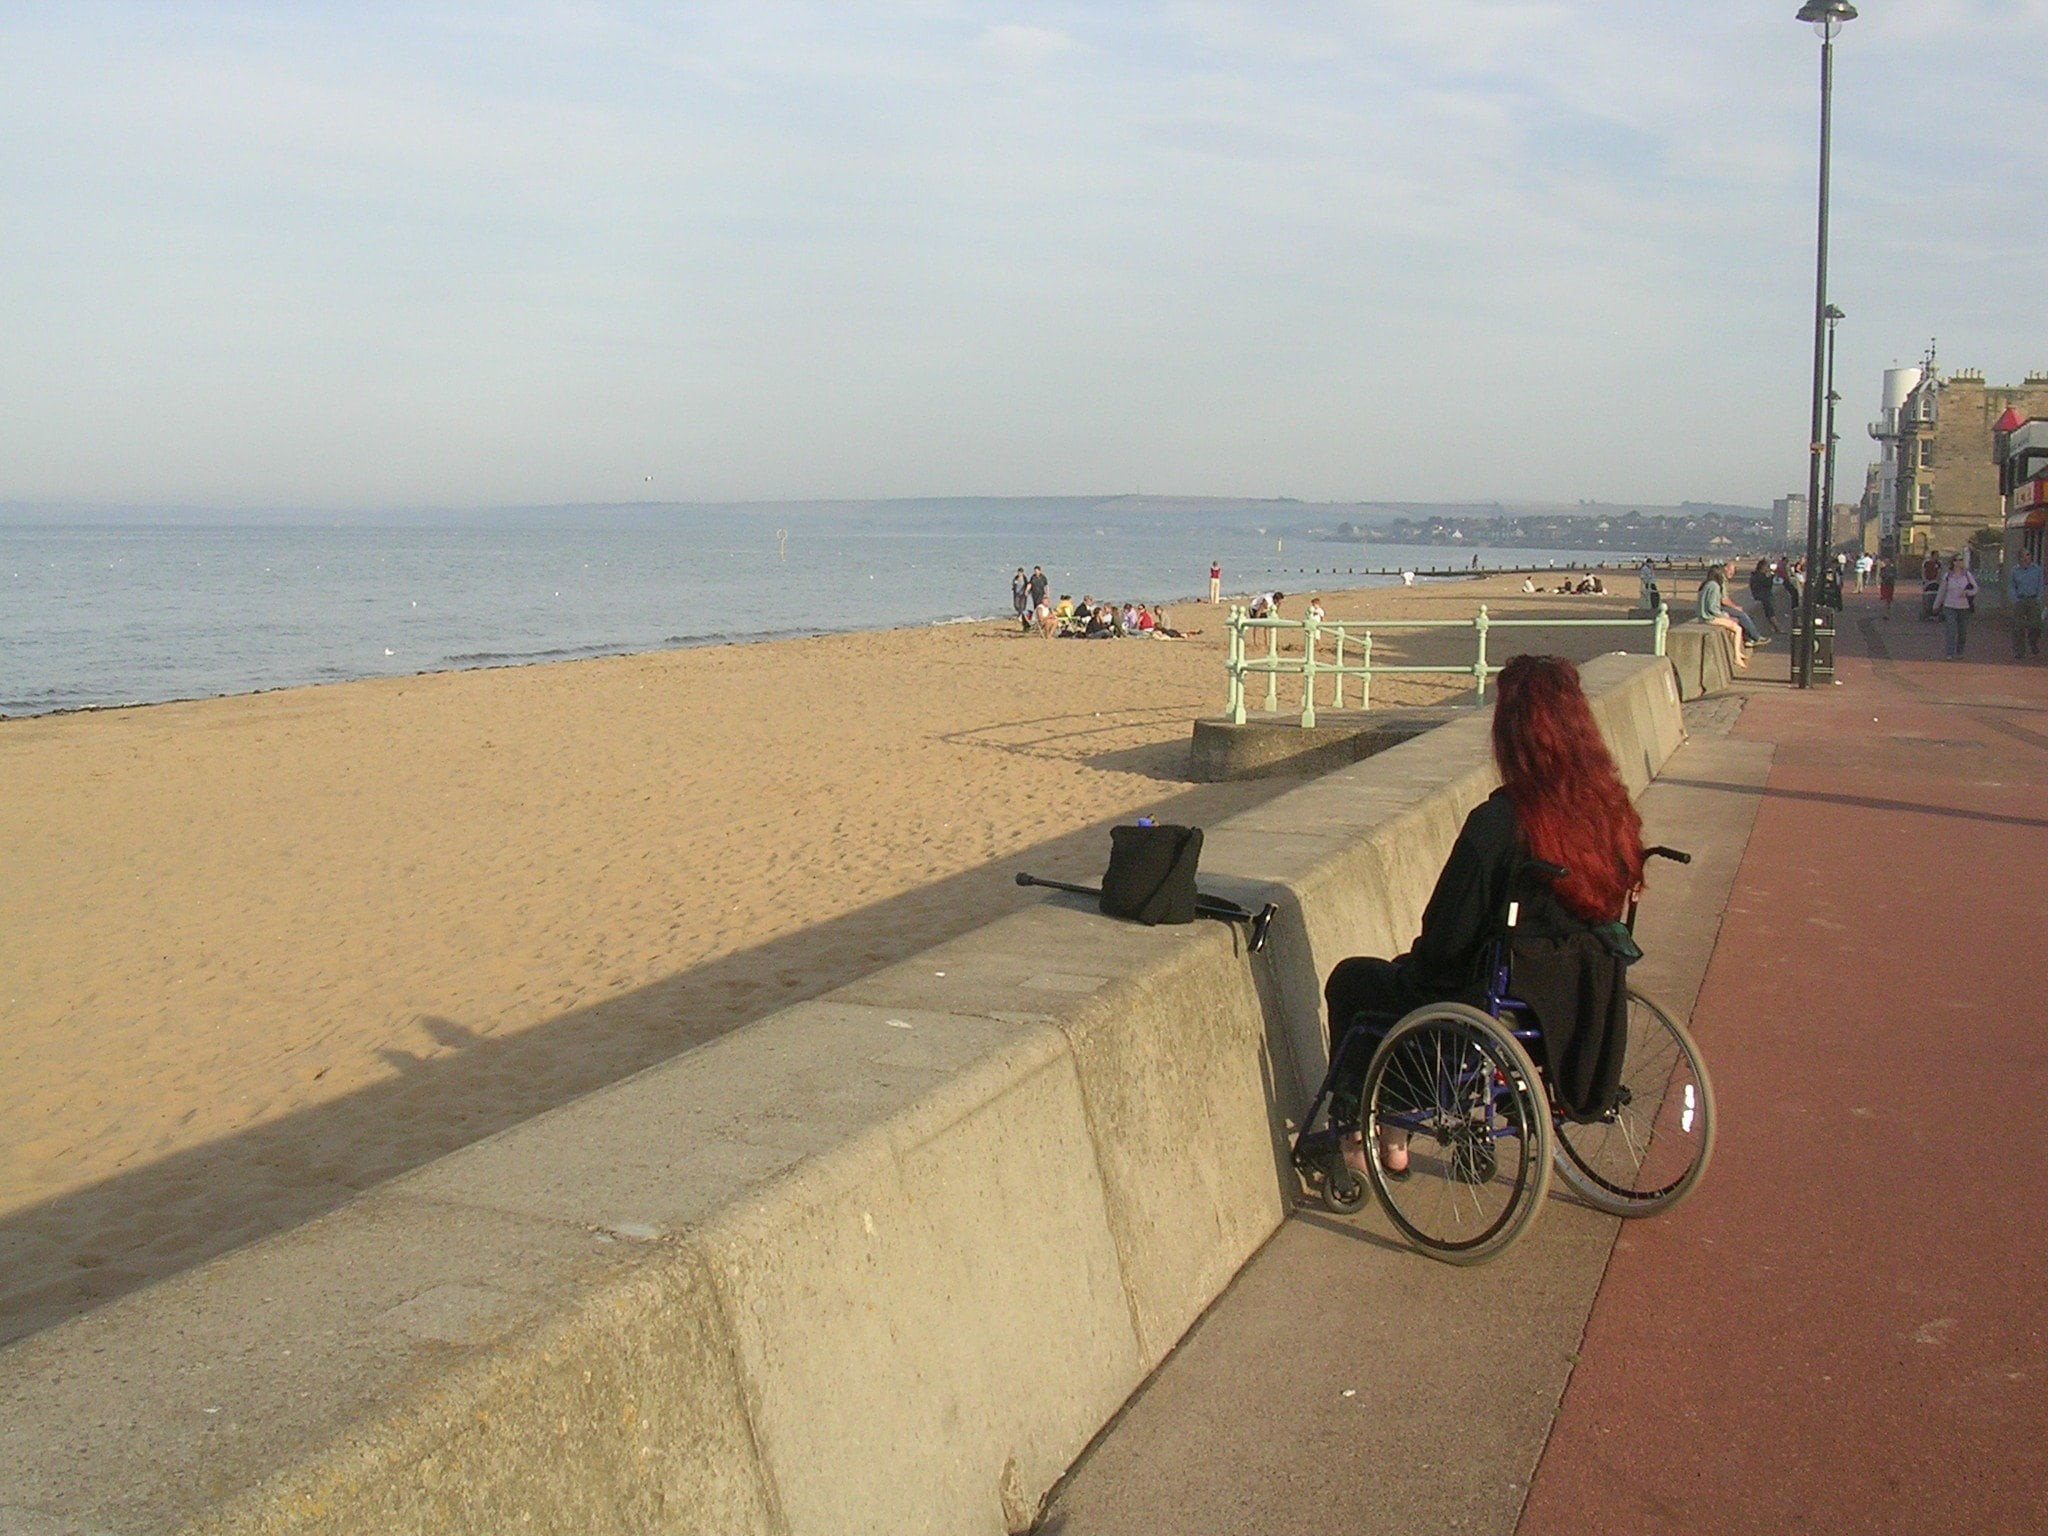 A person in a wheelchair looks out to sea from an urban promenade. There is a beach between the promenade and the water but no access path can be seen